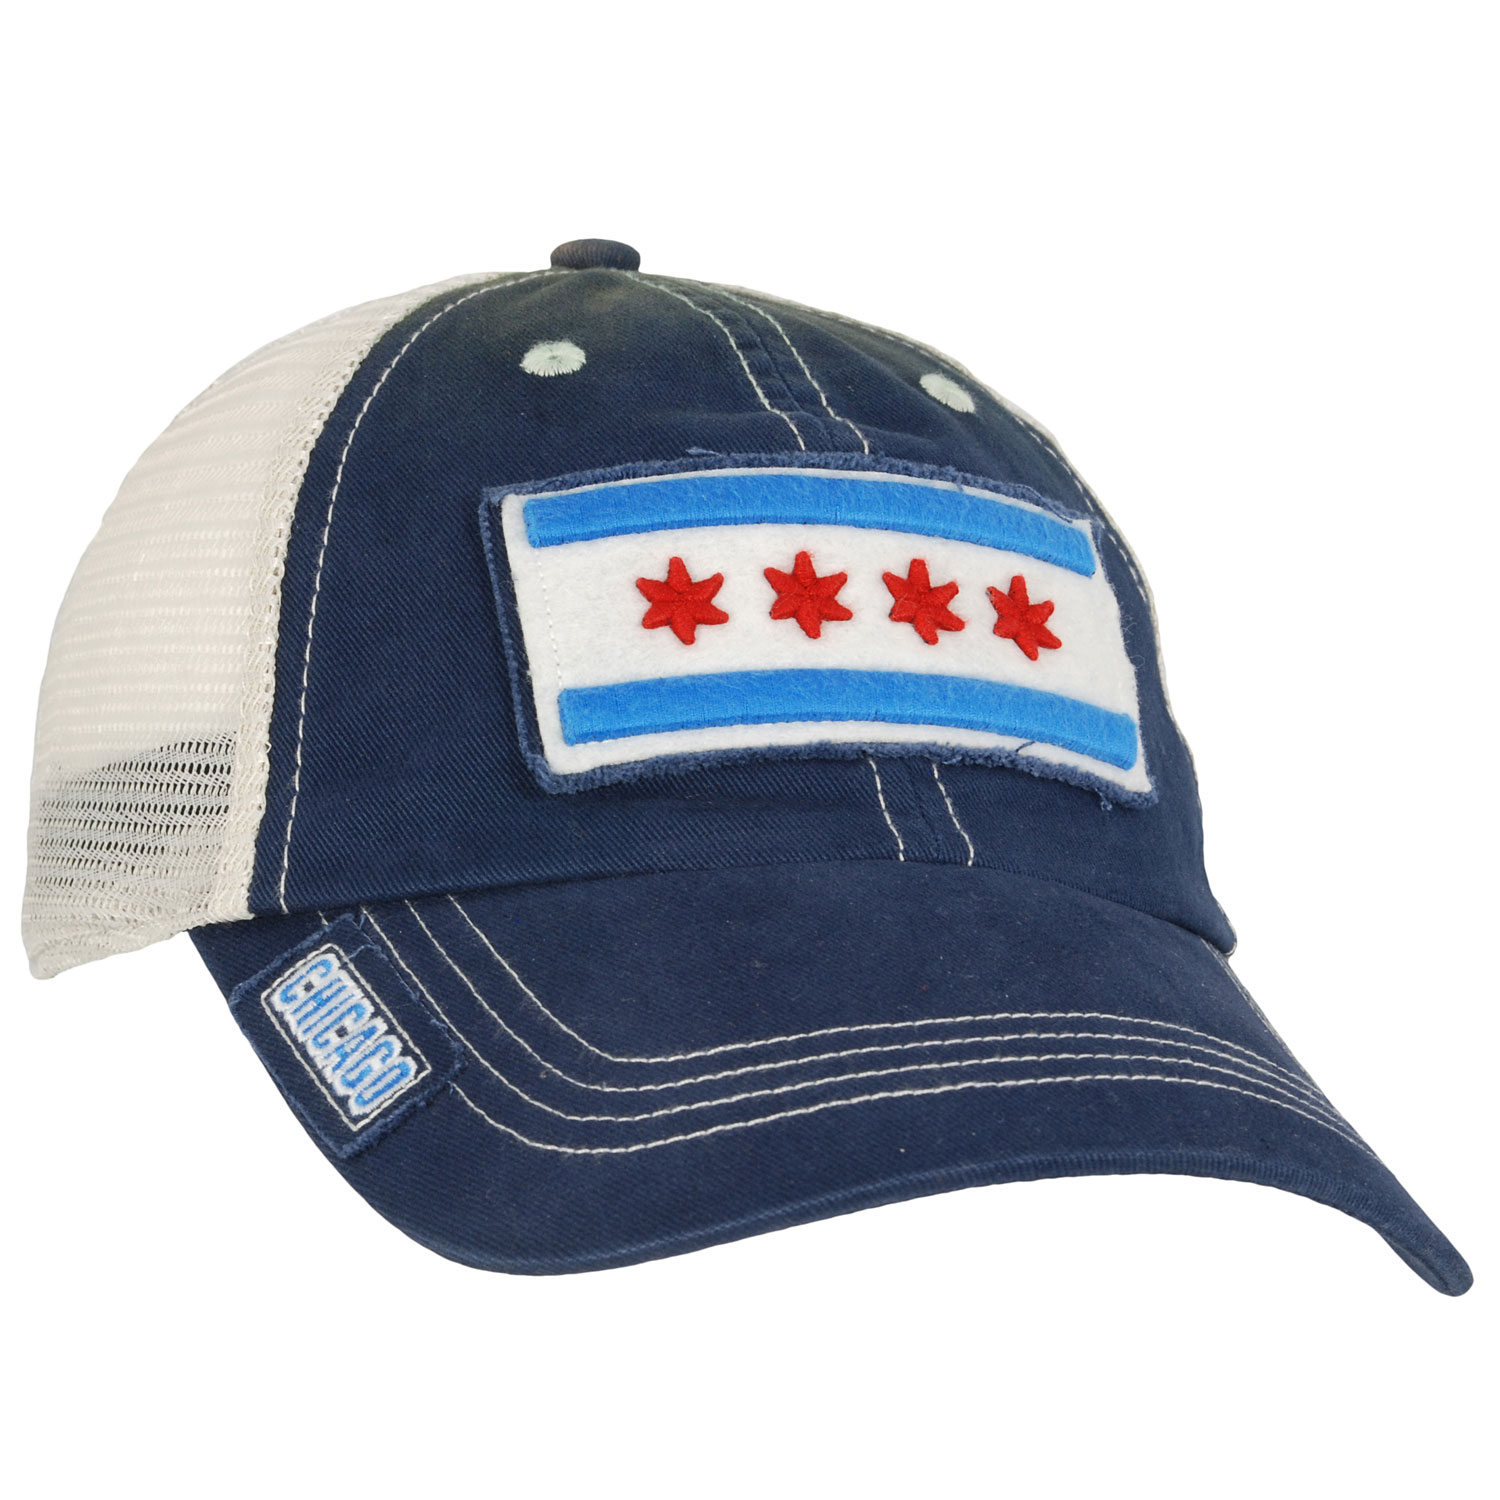 City of Chicago Flag Mesh Adjustable Cap